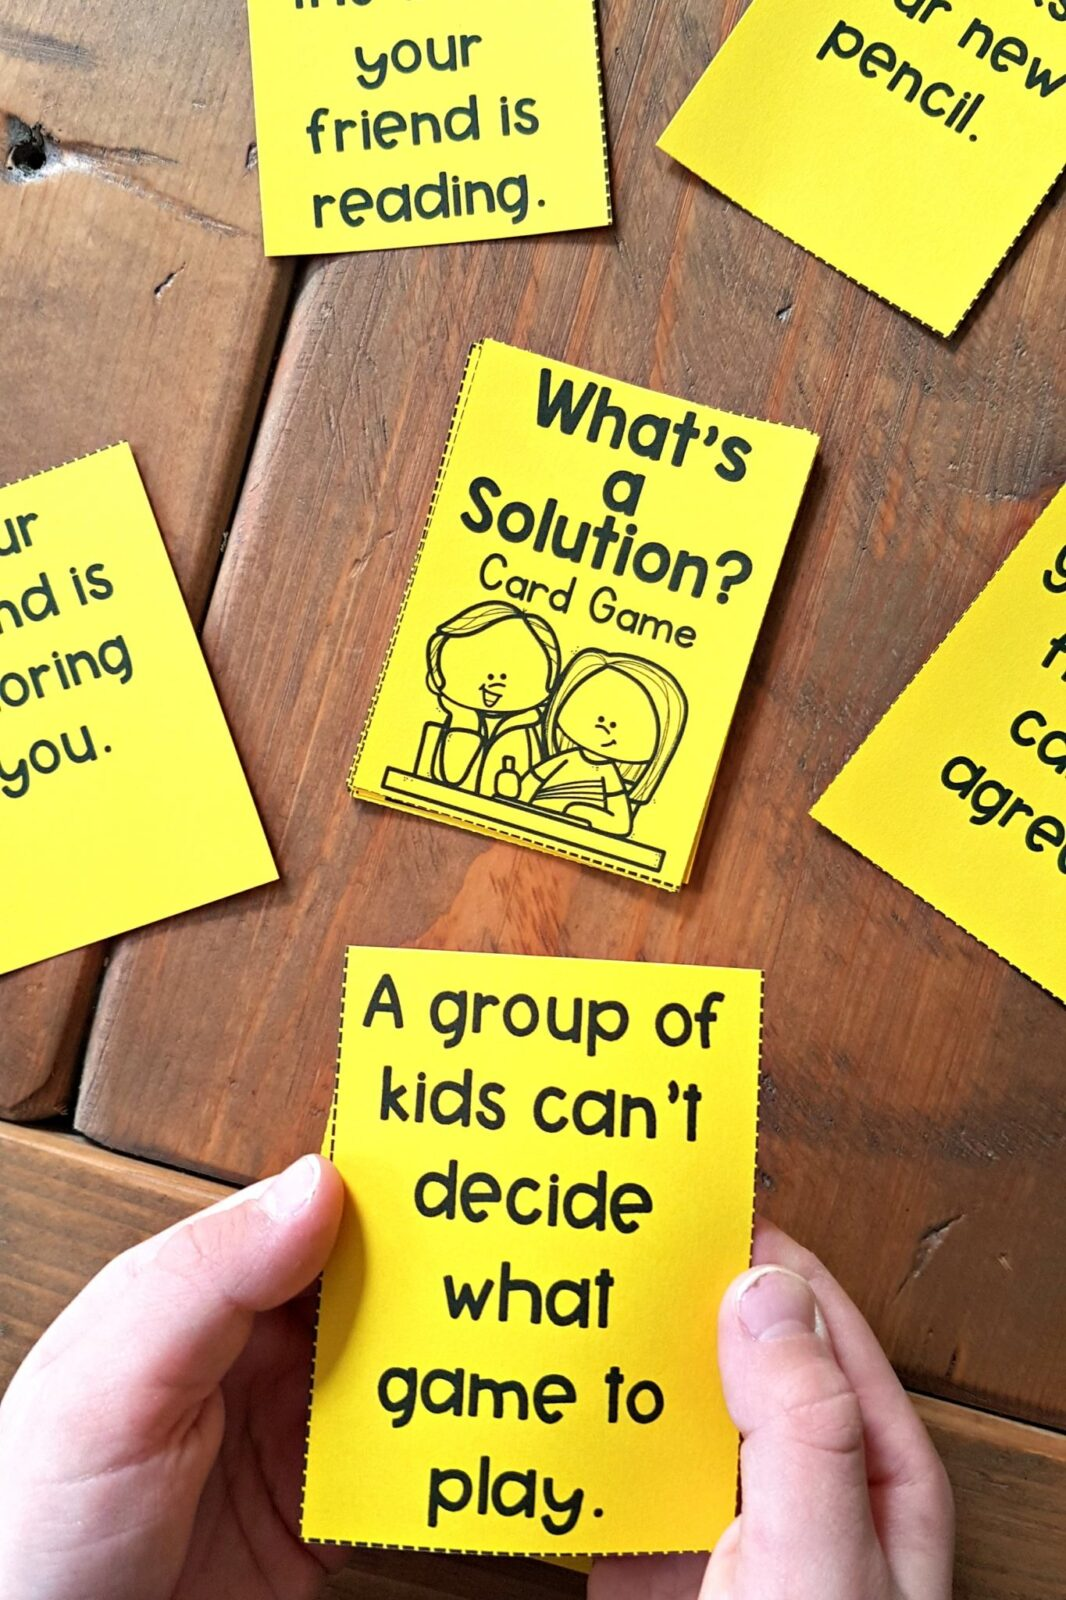 what's the solution card game on table with hands